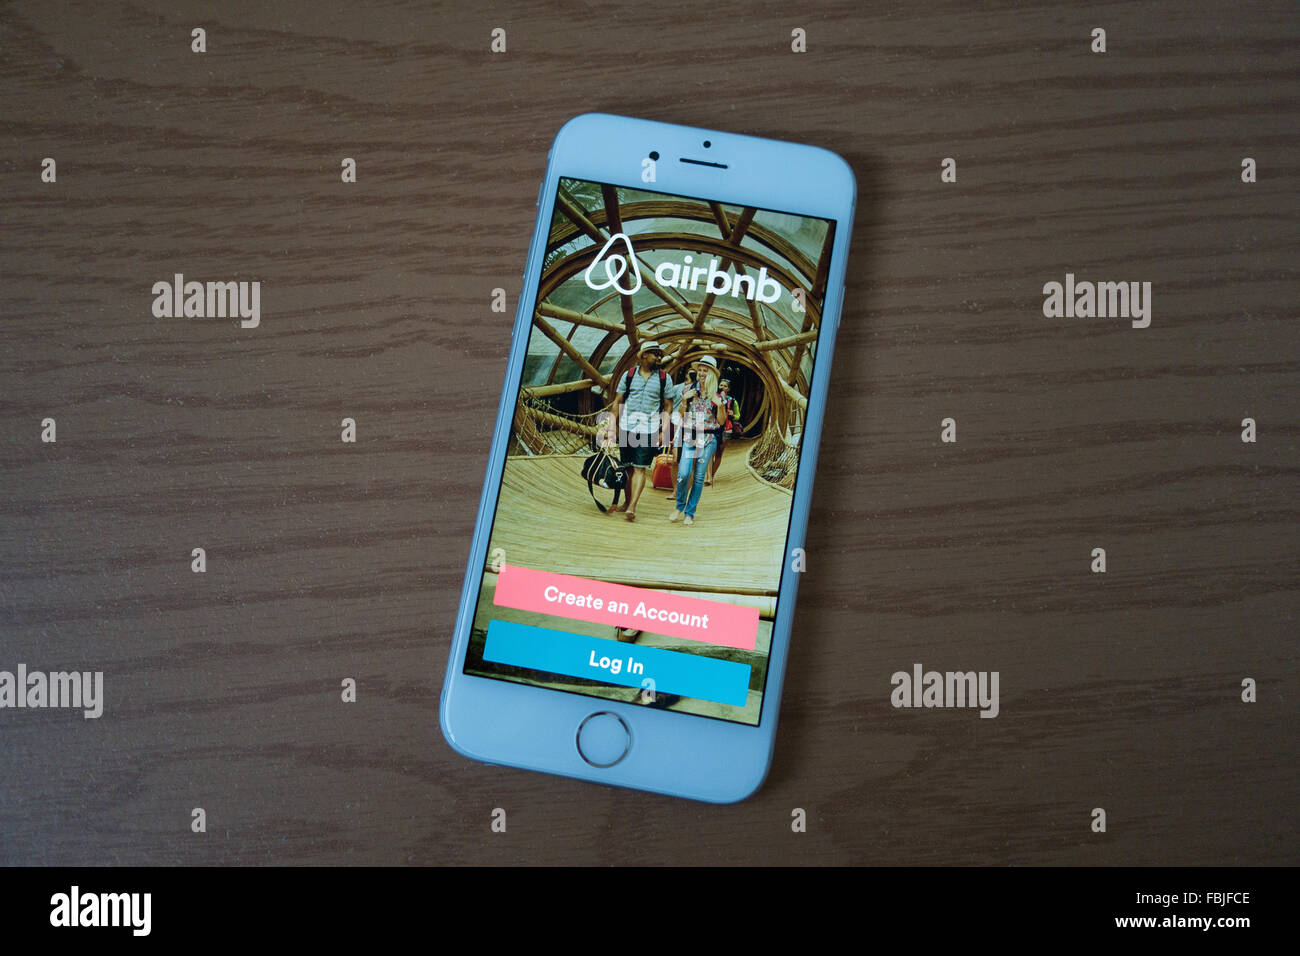 Airbnb smart phone app iphone Imagen De Stock